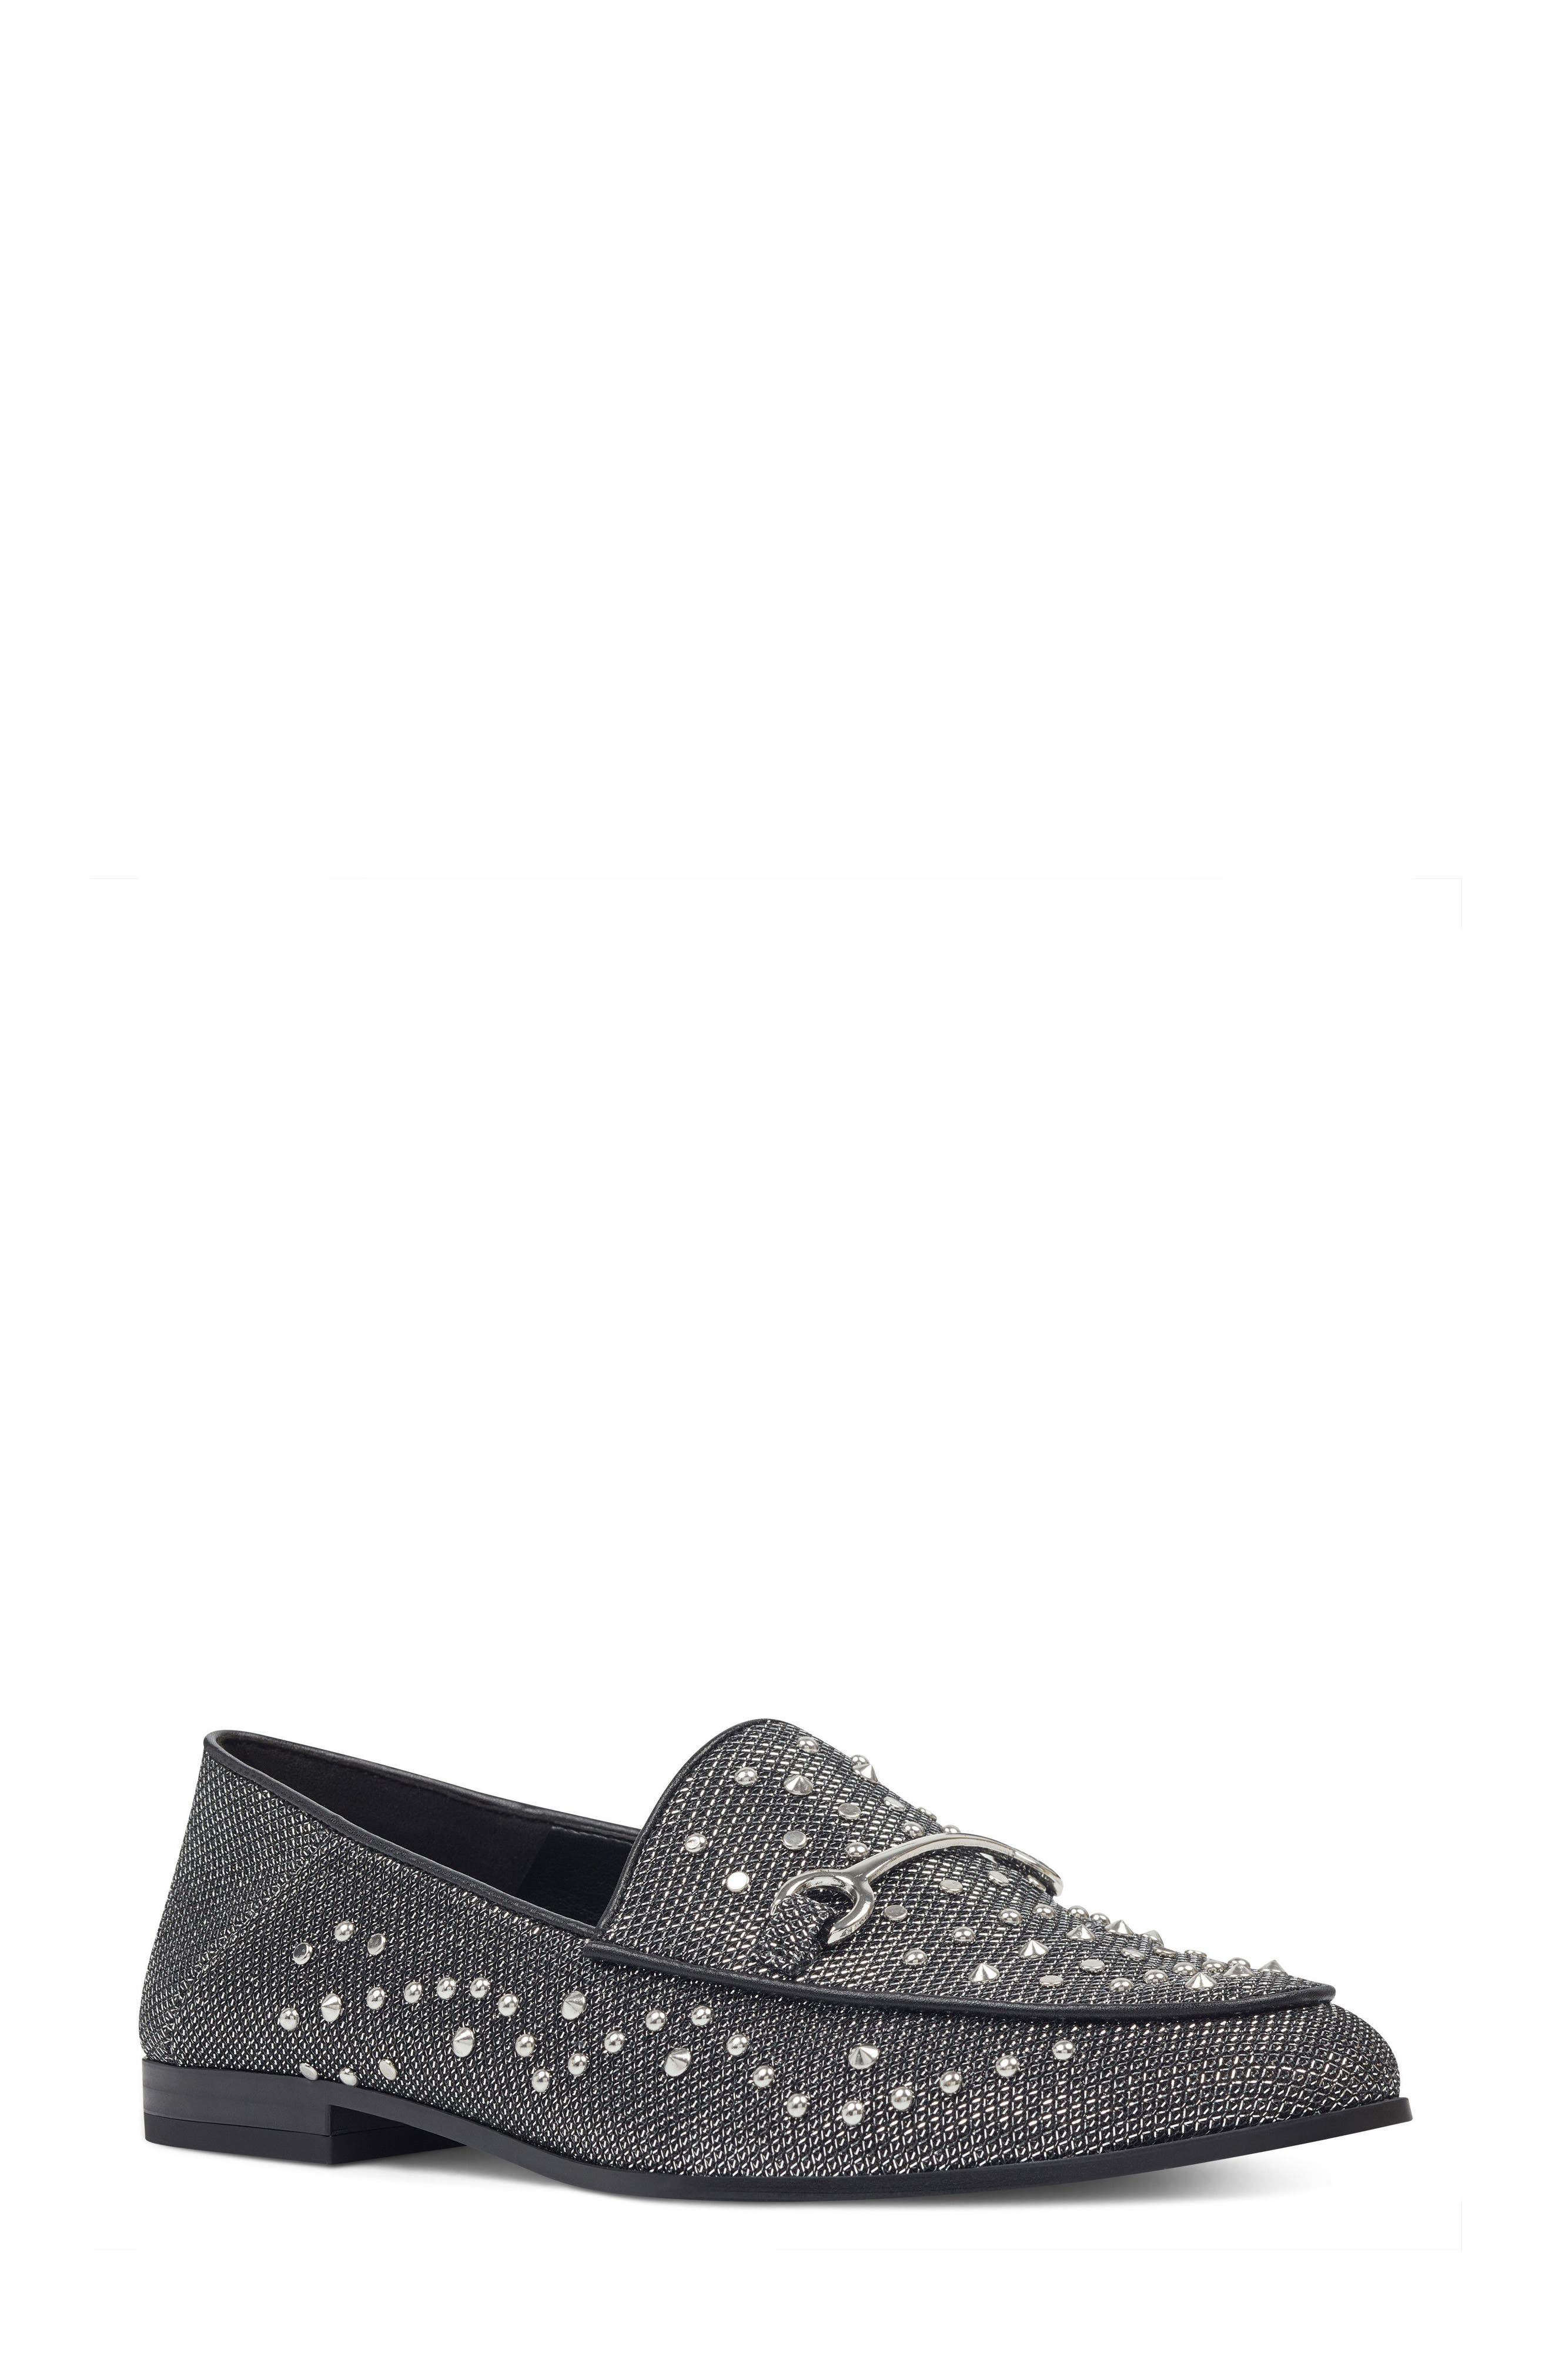 Westoy Studded Loafer,                         Main,                         color, 001